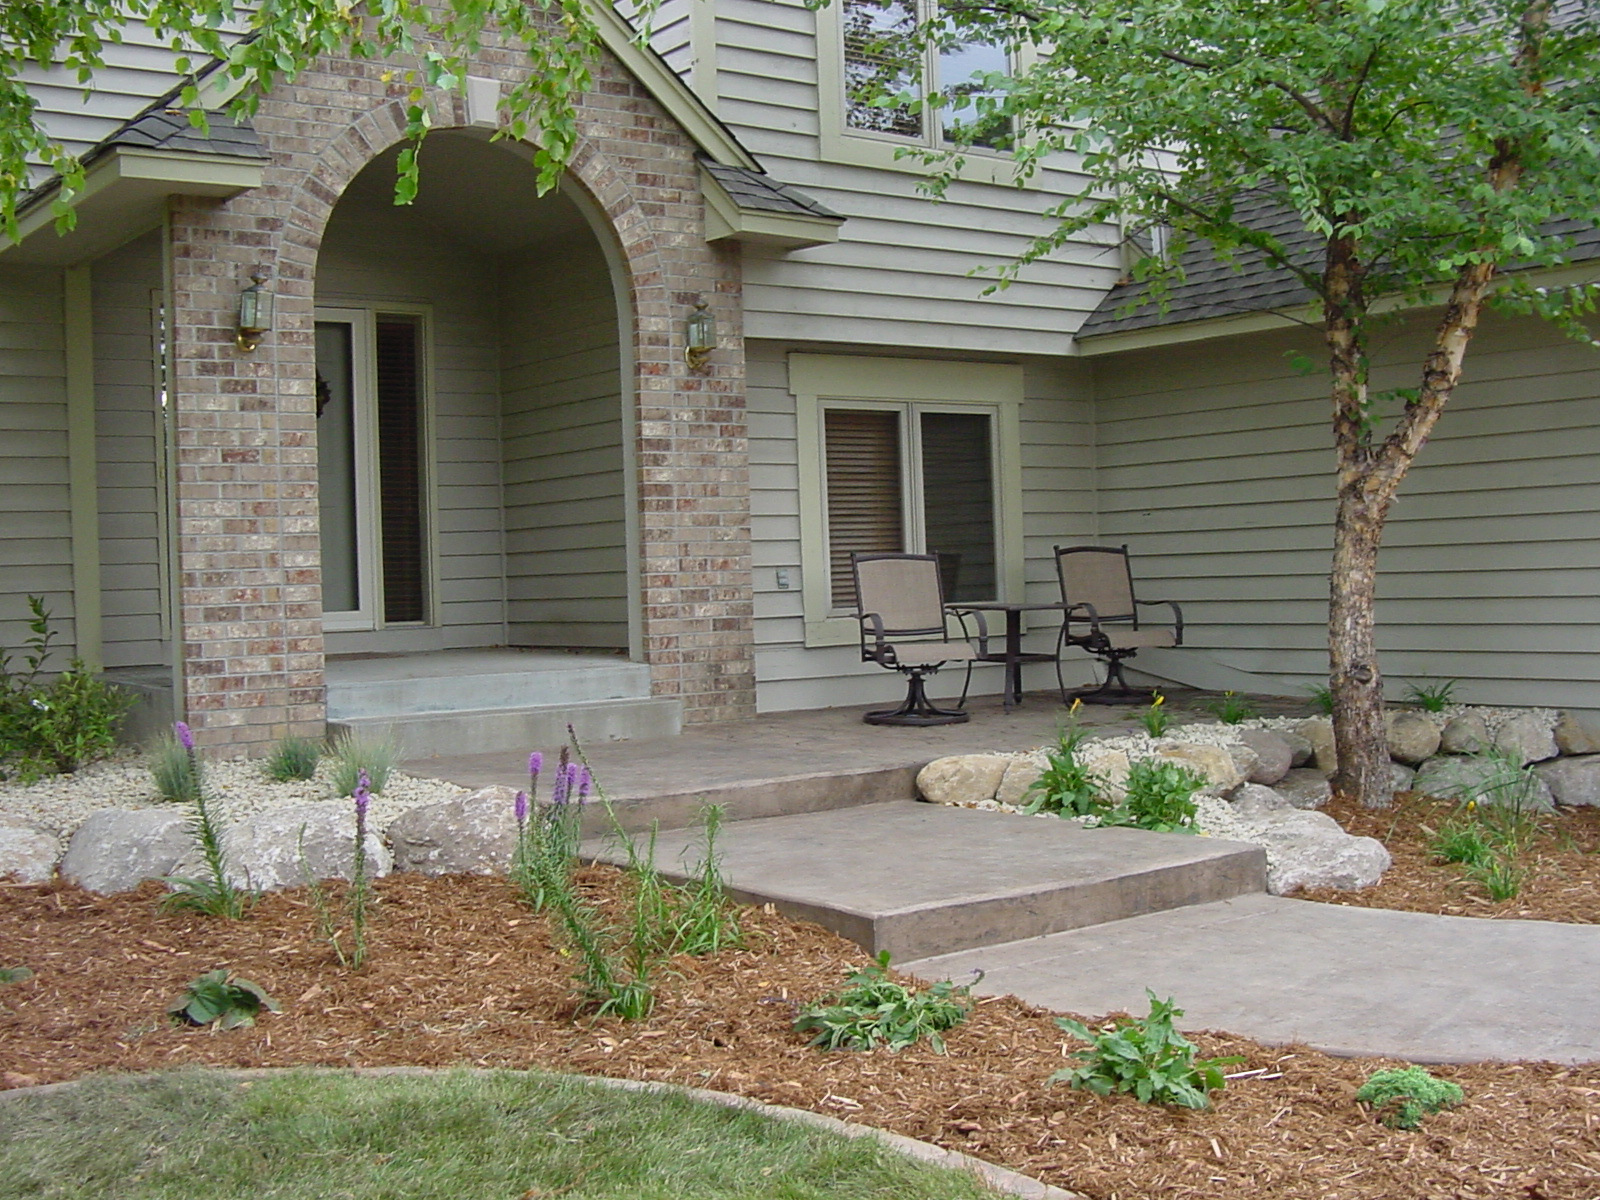 Residential landscape design ideas and photos, Shakopee ... on Concrete Front Yard Ideas id=46335